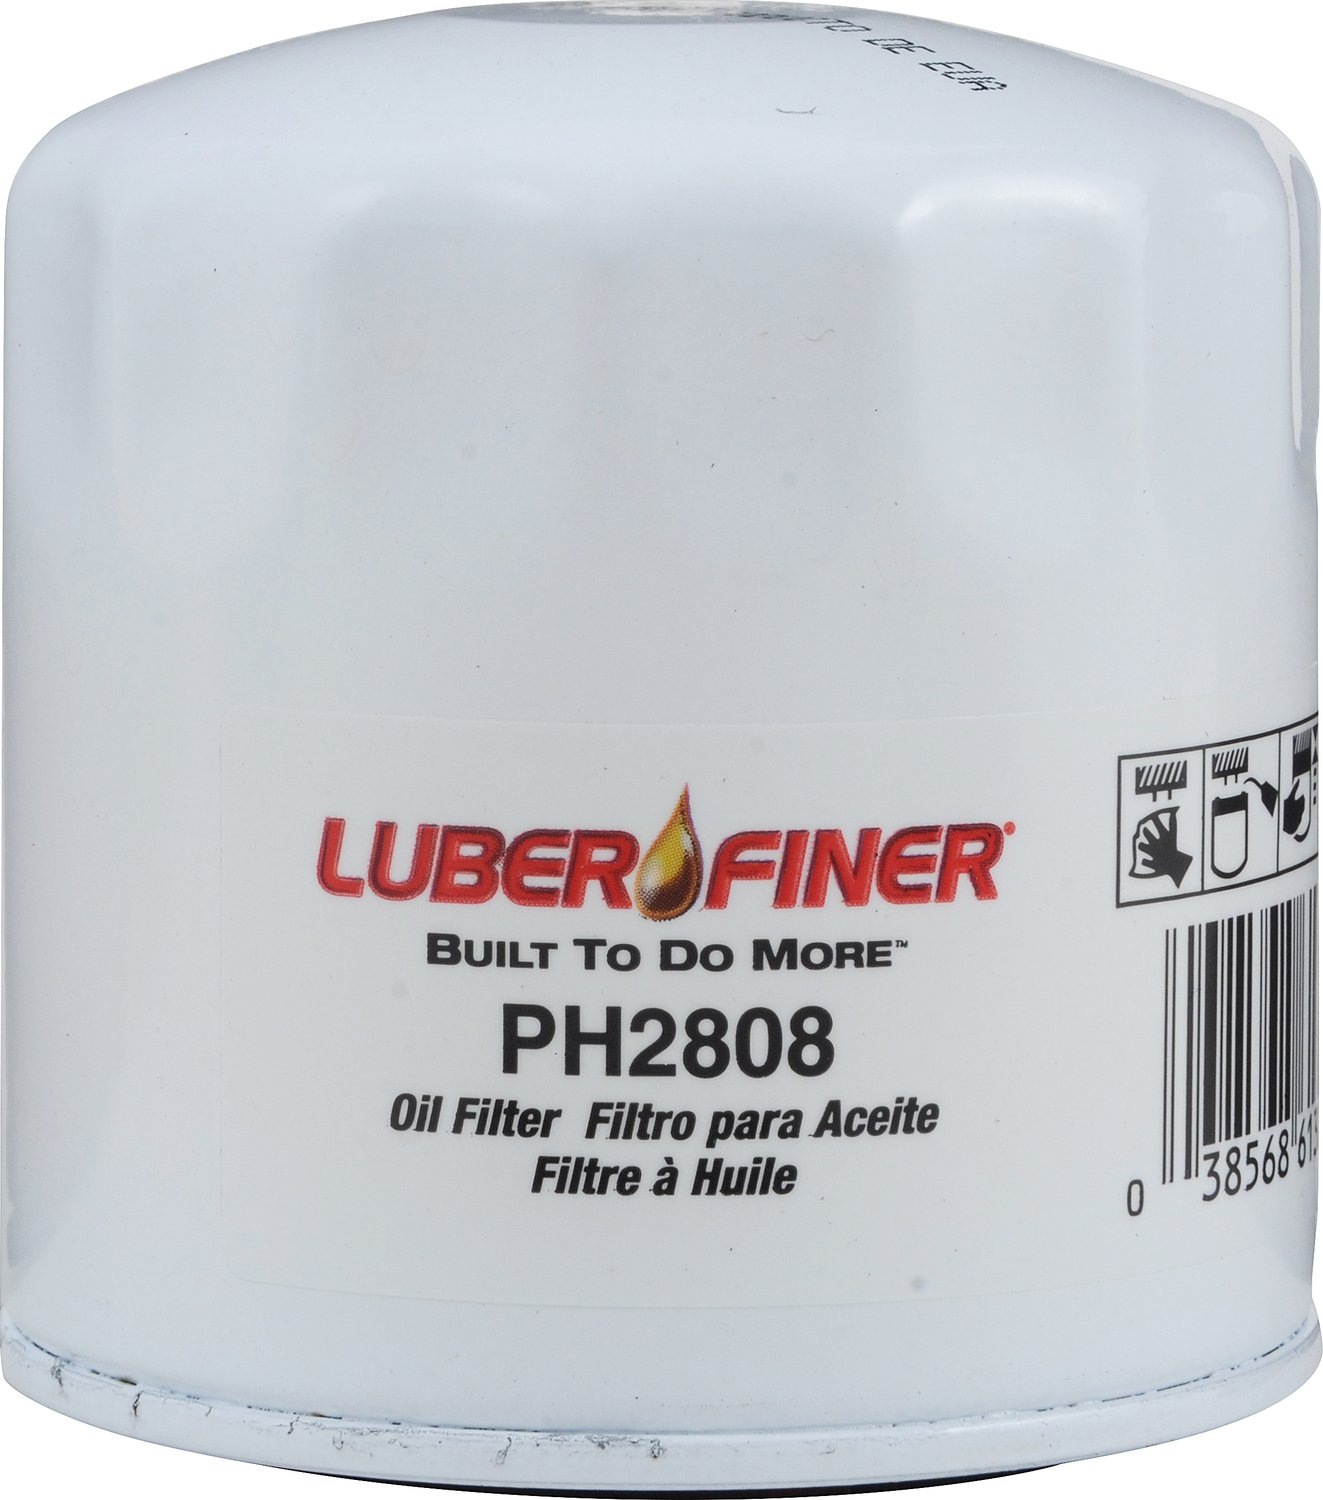 Luber-finer PH2808-12PK 12 Pack Automotive Accessories, 12 Pack by Luber-finer